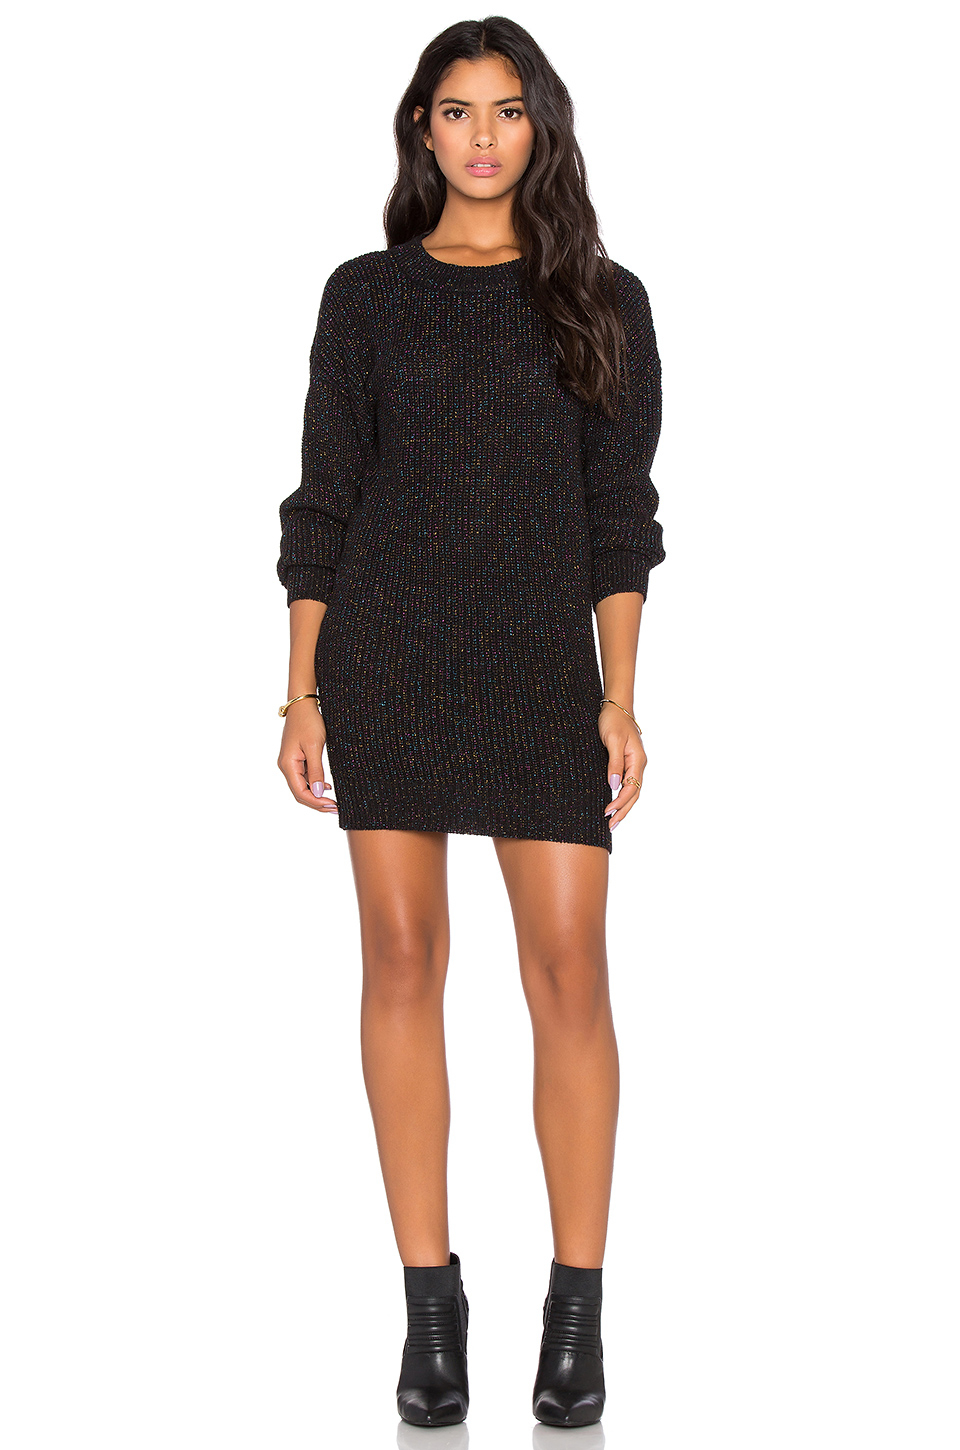 You searched for: dressy black sweater! Etsy is the home to thousands of handmade, vintage, and one-of-a-kind products and gifts related to your search. No matter what you're looking for or where you are in the world, our global marketplace of sellers can help you .